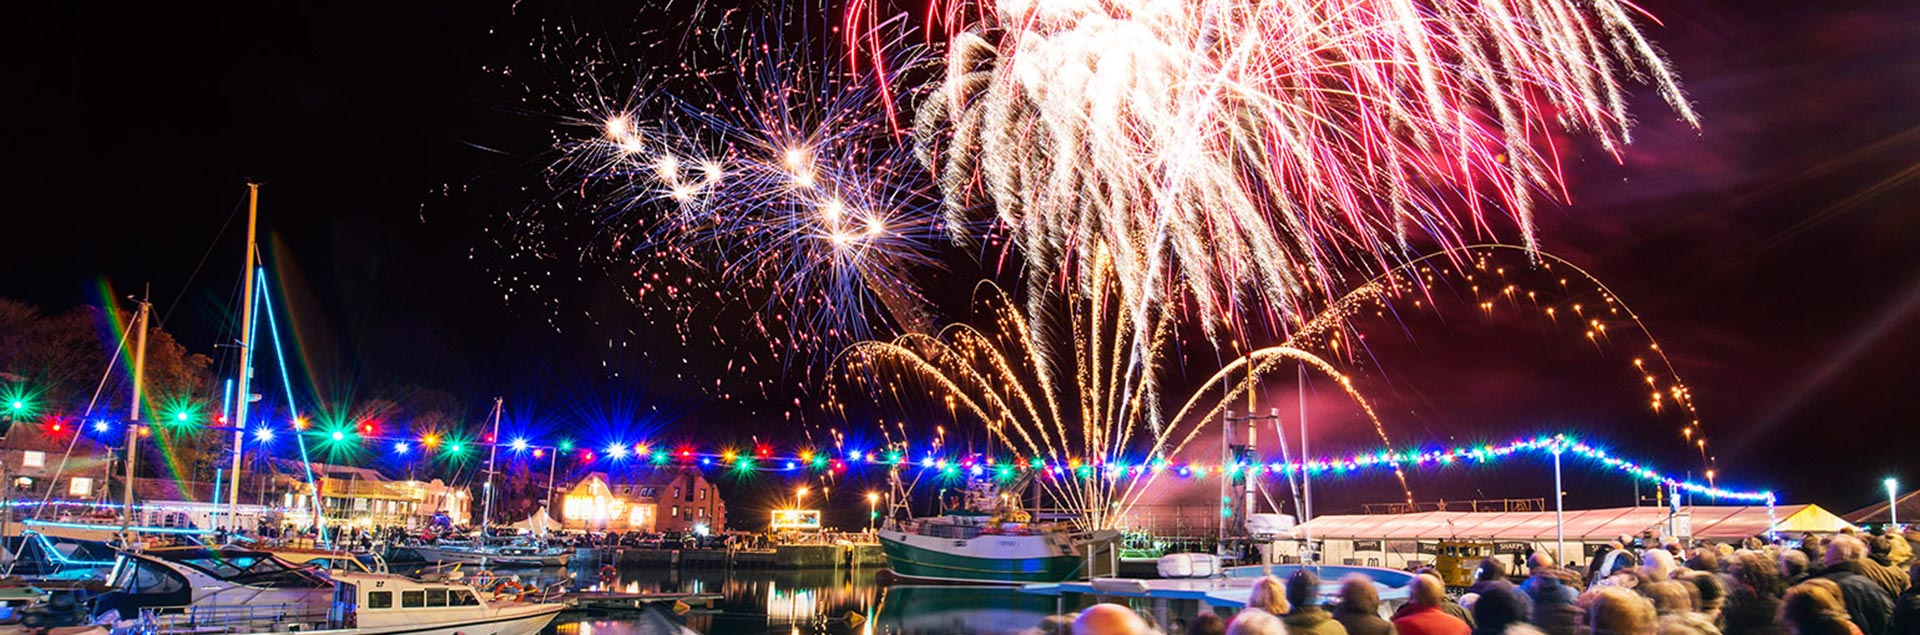 Padstow Christmas festival in Cornwall